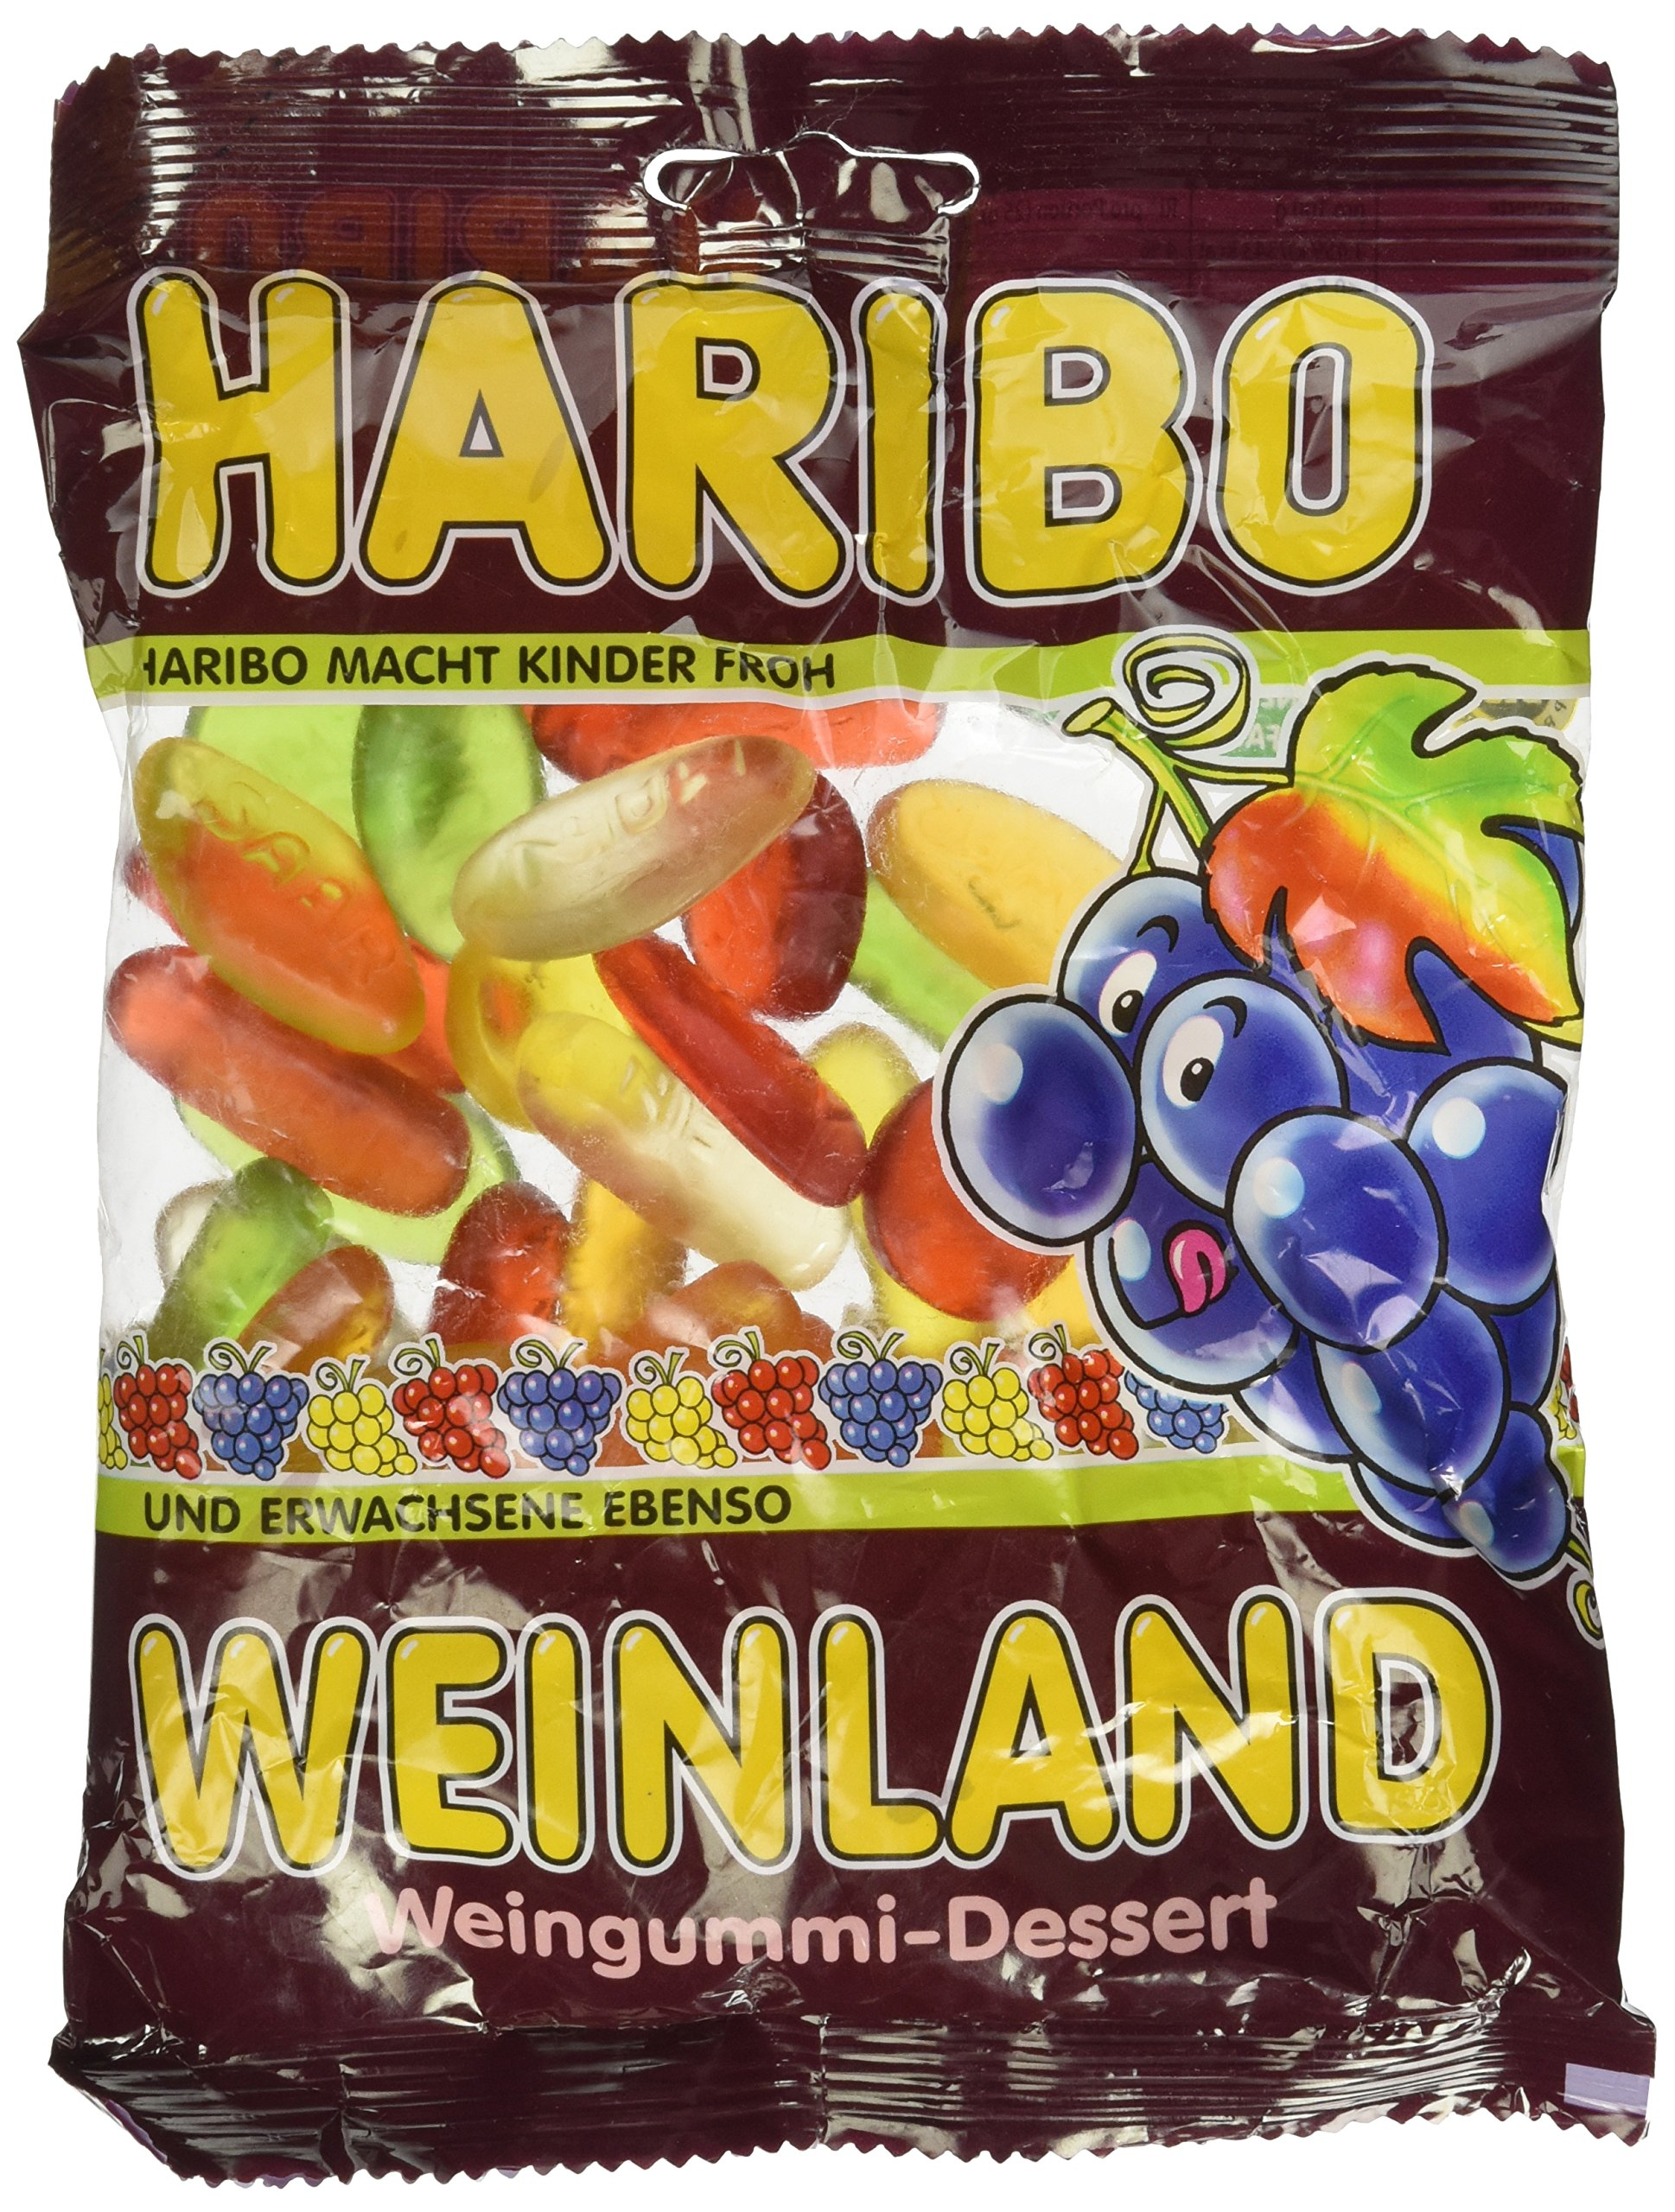 Haribo gummy bears are just one of many products that thomas - Haribo Weinland Gummi Candy 200g 7 1oz